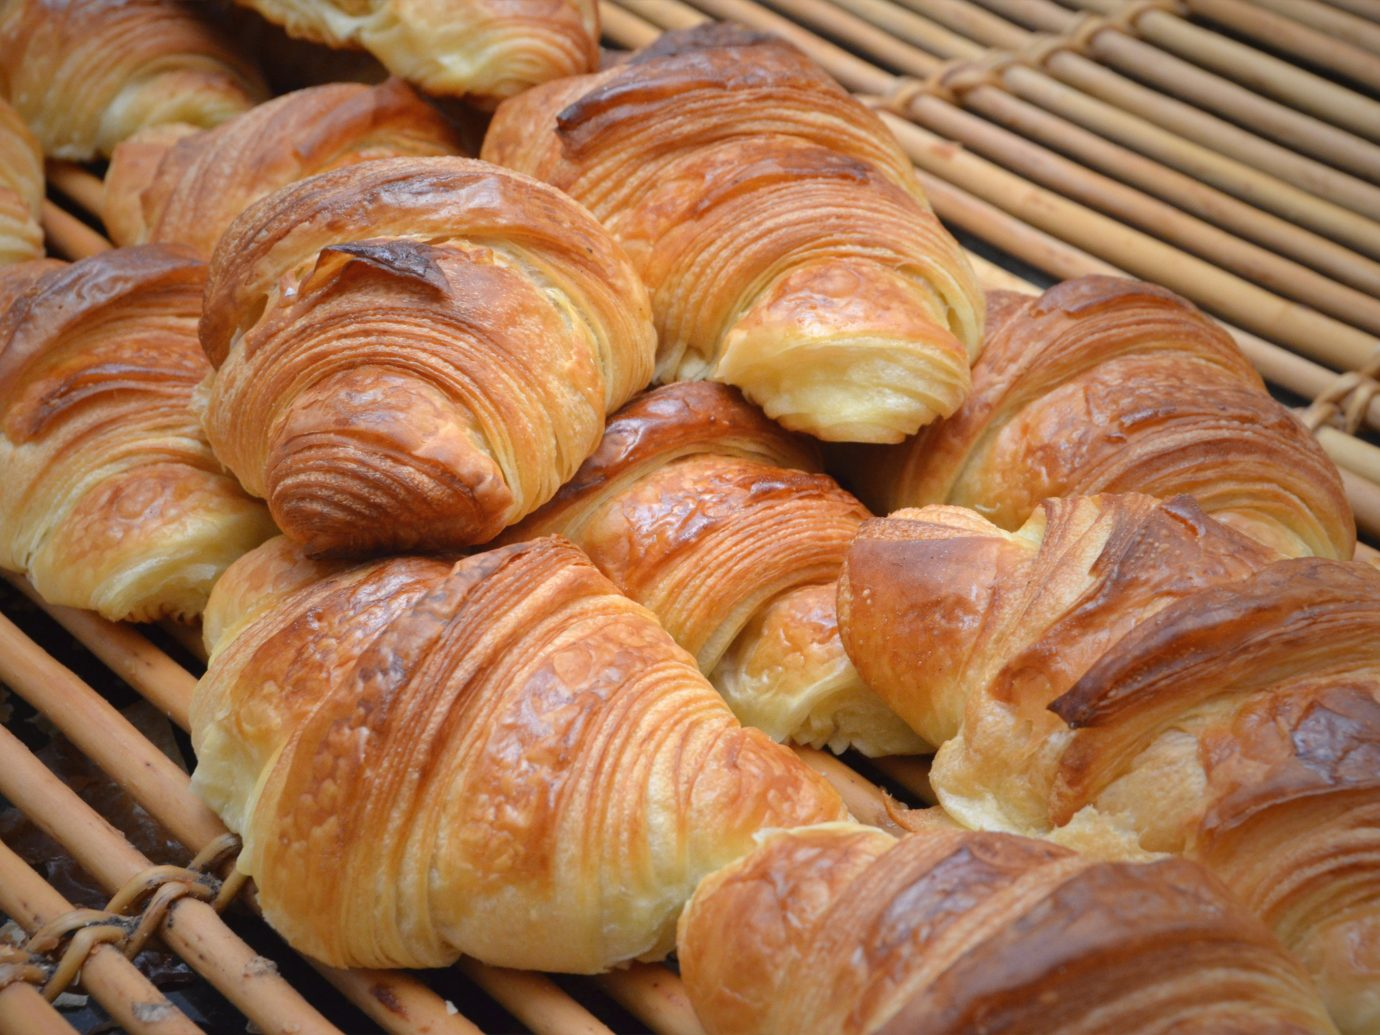 Food + Drink France Paris food baked goods dessert schnecken croissant tsoureki pastry viennoiserie bread bakery danish pastry baking brioche grill cooked